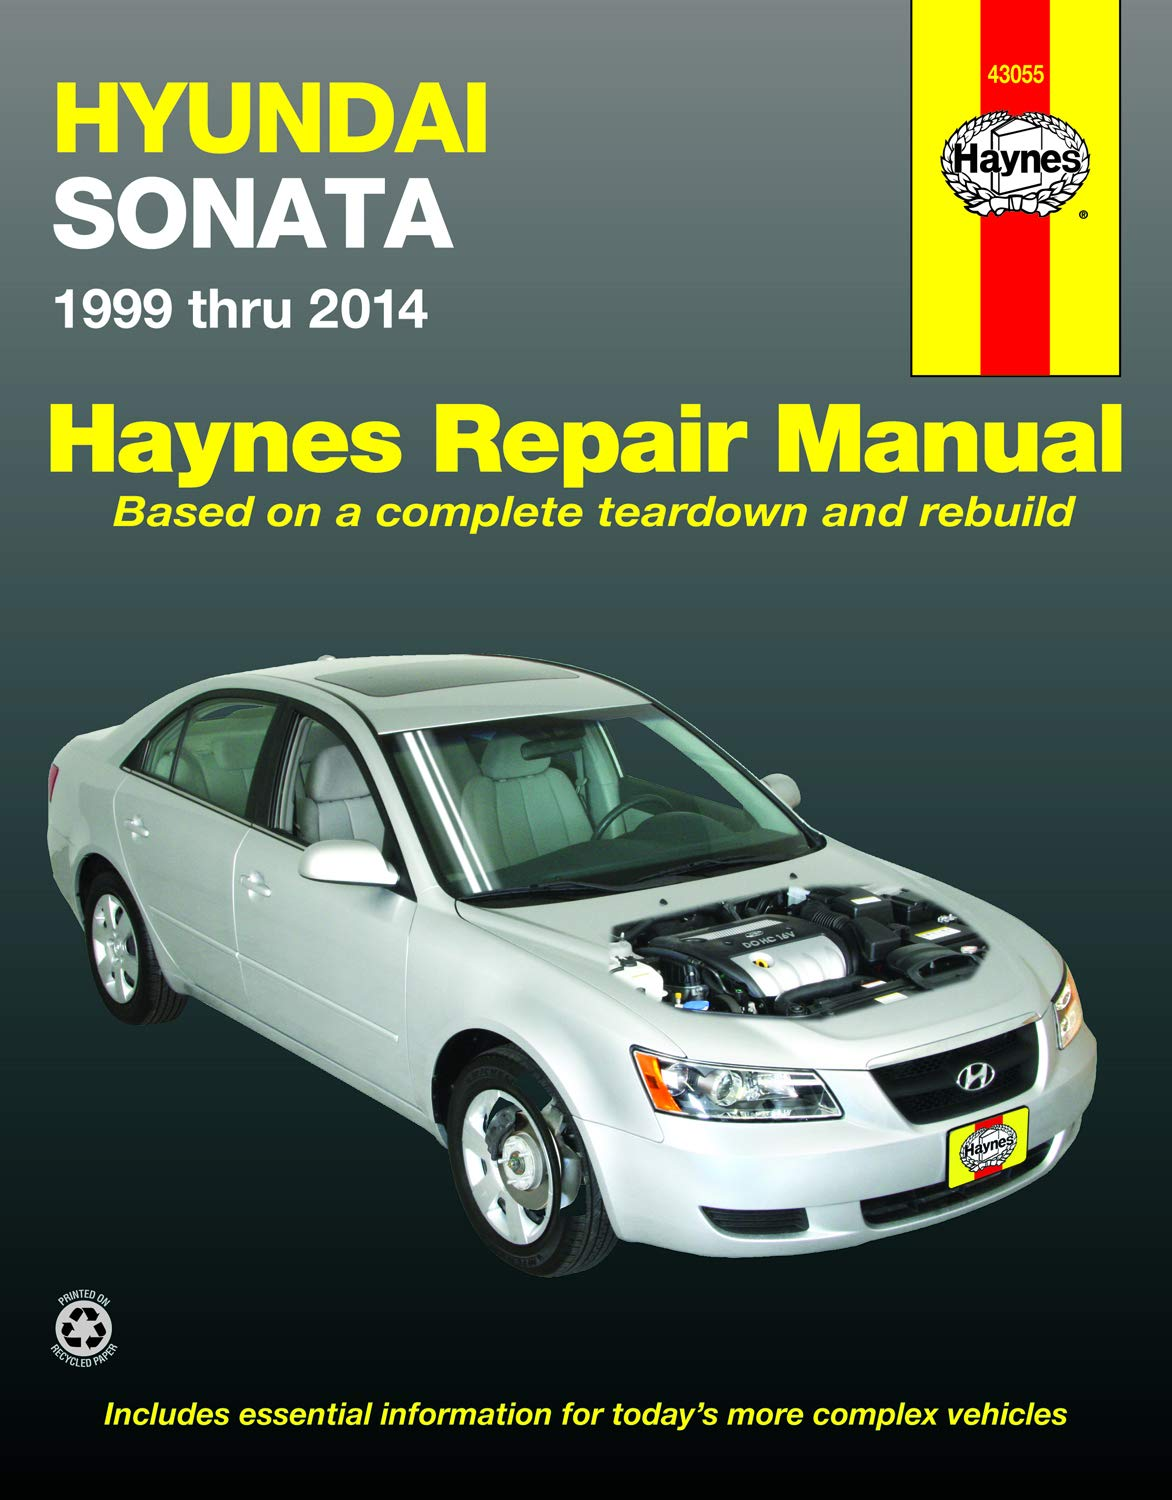 hyundai sonata (99-14) haynes repair manual: editors of haynes manuals:  9781620920848: amazon.com: books  amazon.com